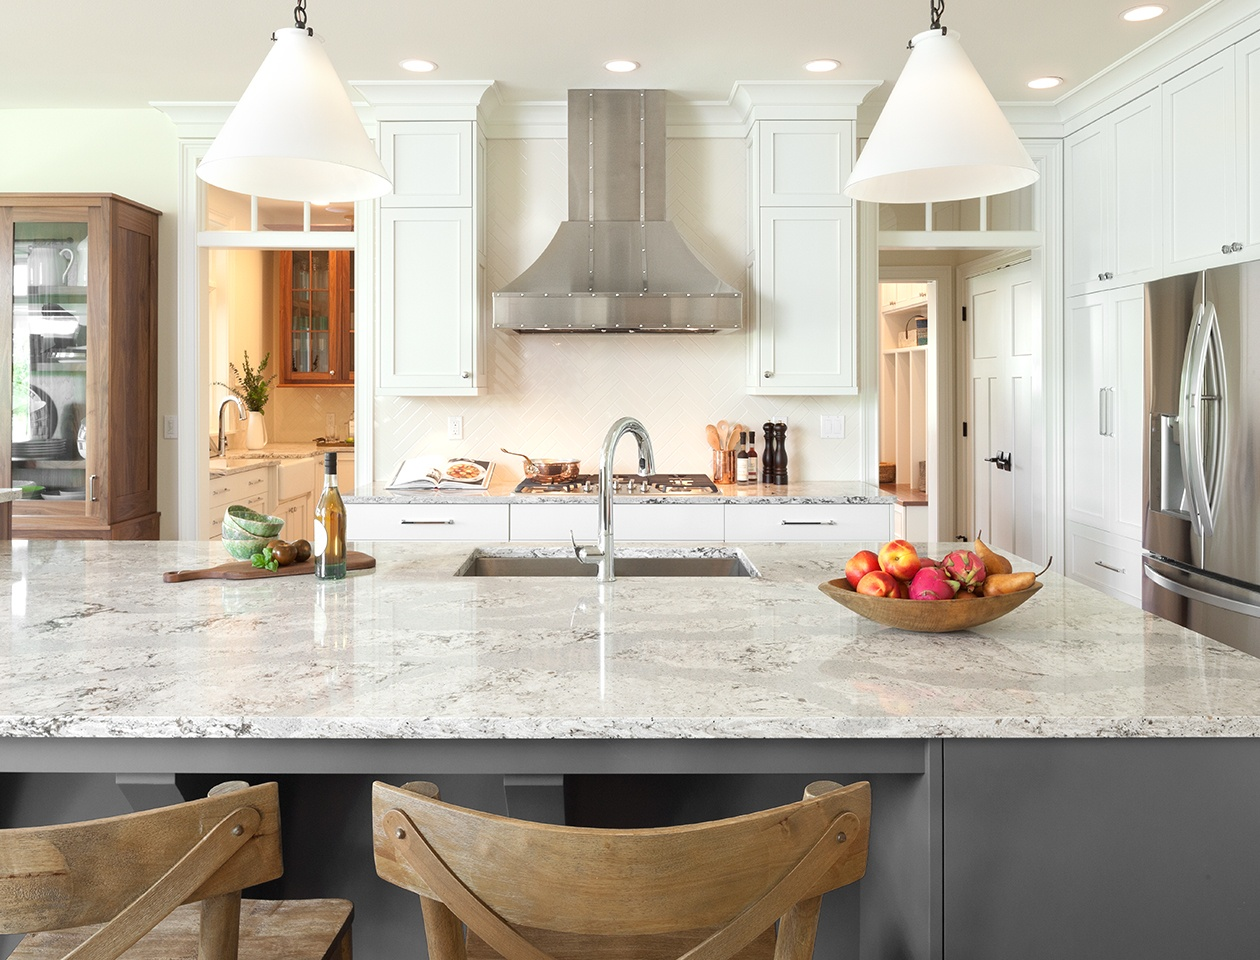 Quartz Countertop Colors : Stunning quartz countertop colors to gather inspiration